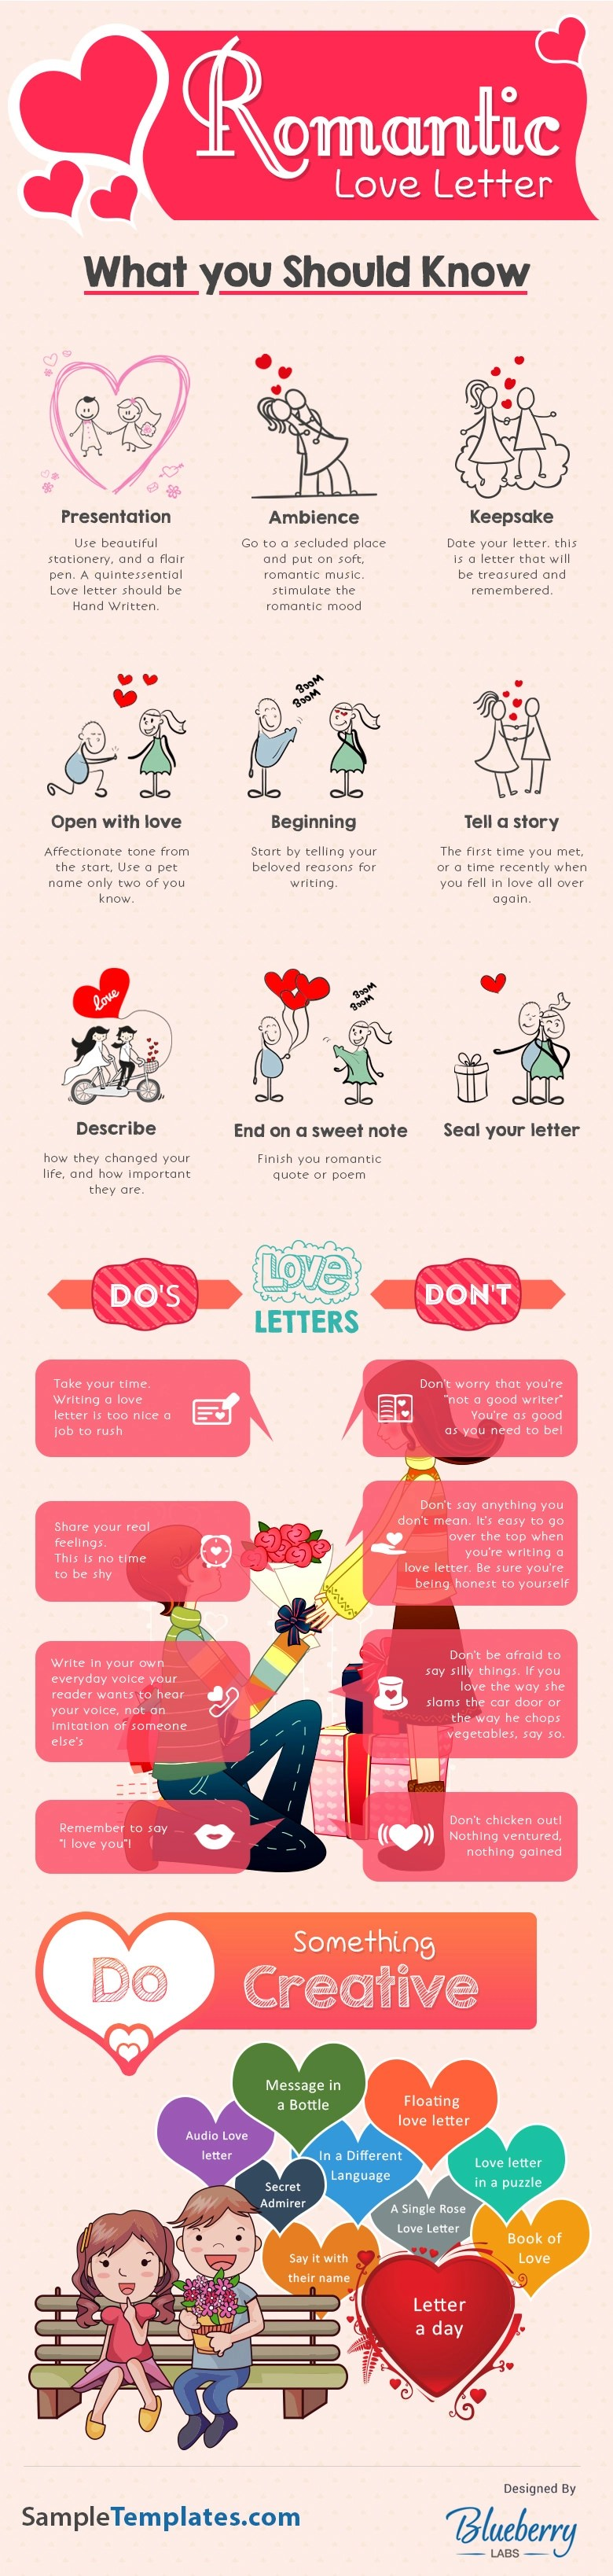 Romantic Love Letter – What you should know